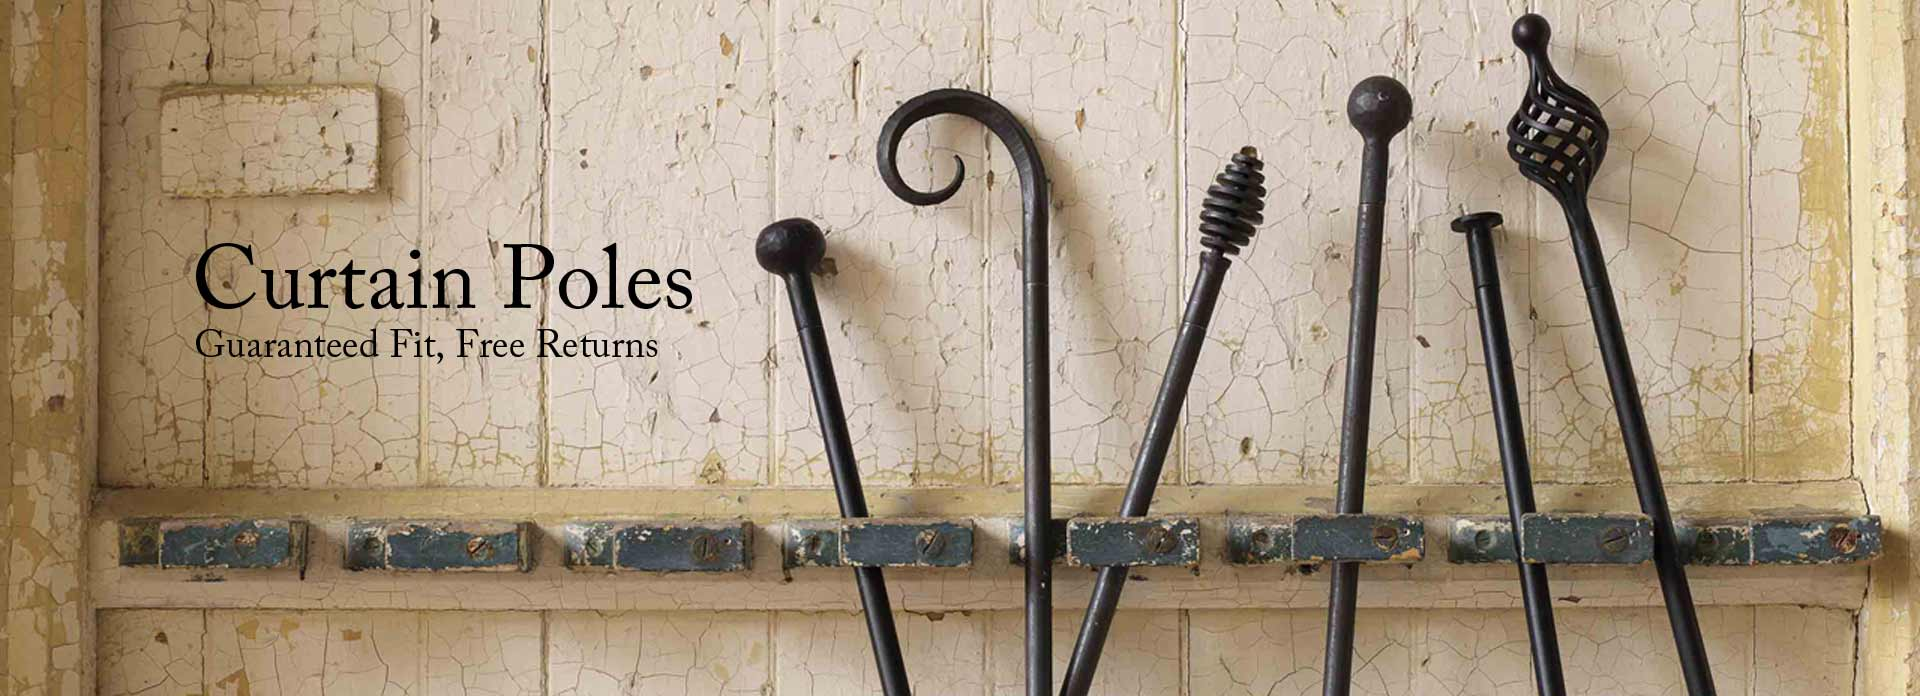 Wrought iron curtain poles made to order